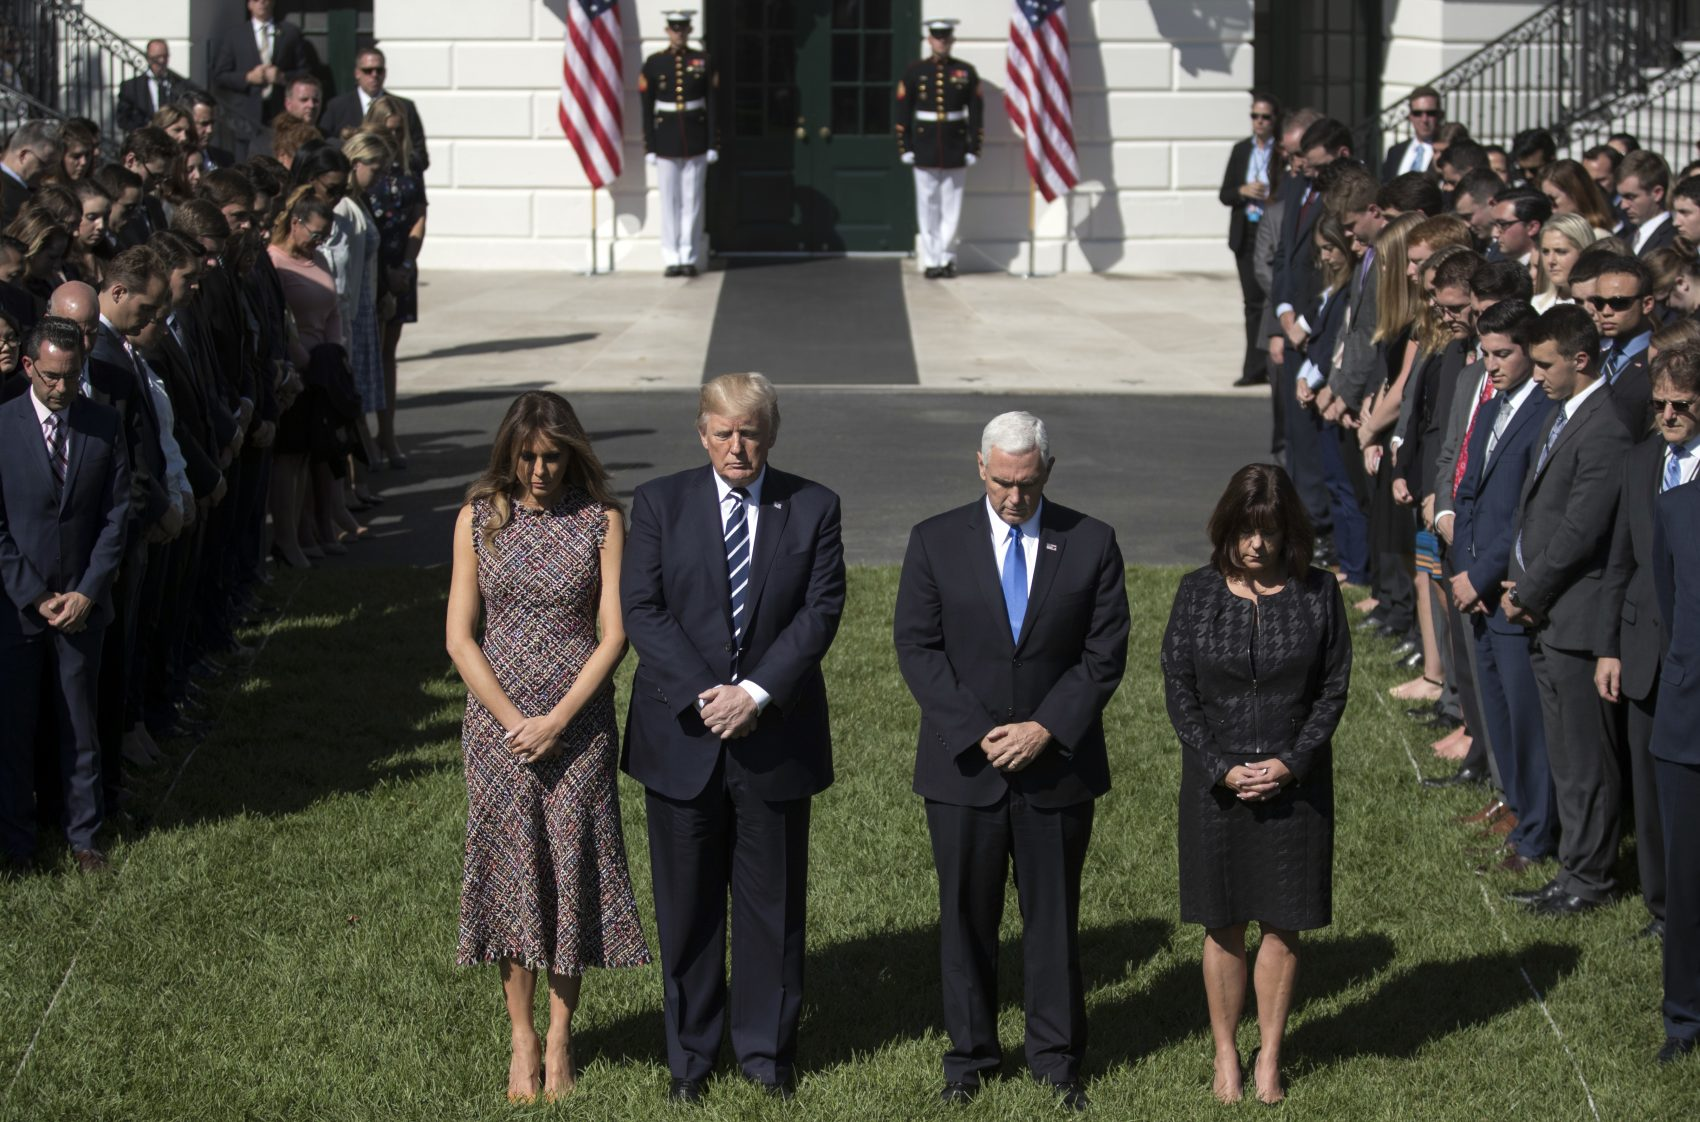 President Donald Trump and first lady Melania Trump stand with Vice President Mike Pence, his wife Karen and members of the White House staff, during a moment of silence to remember the victims of the mass shooting in Las Vegas, on the South Lawn of the White House in Washington, Monday, Oct. 2, 2017. (Carolyn Kaster/AP)